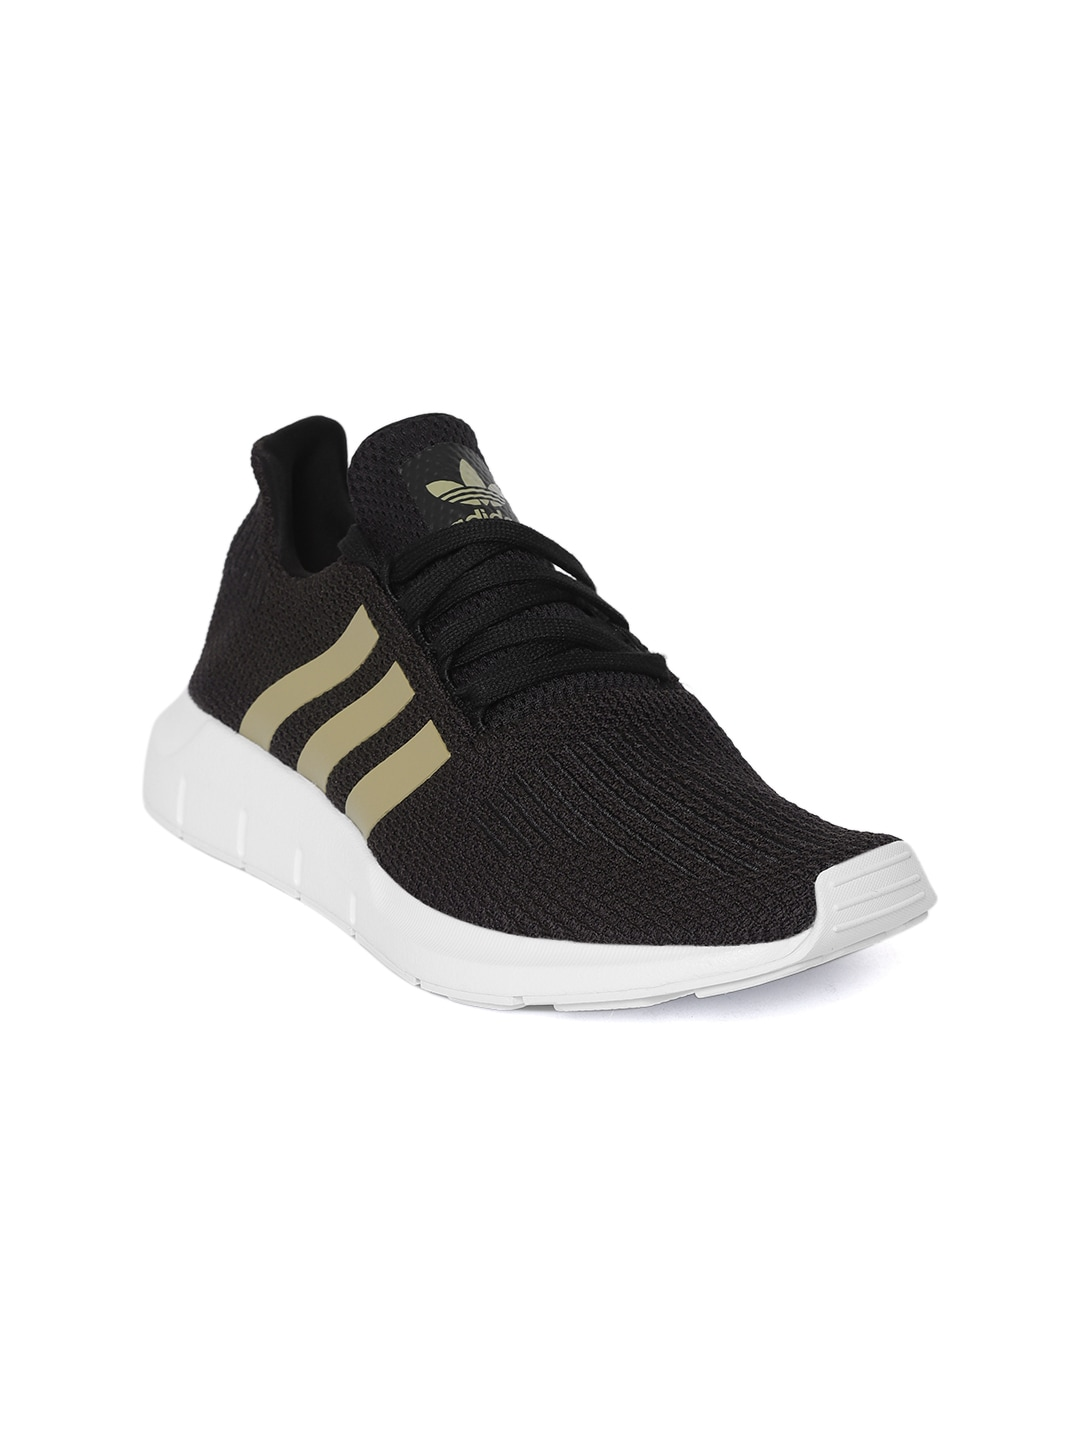 new arrival e740f ffa4b Women s Adidas Shoes - Buy Adidas Shoes for Women Online in India